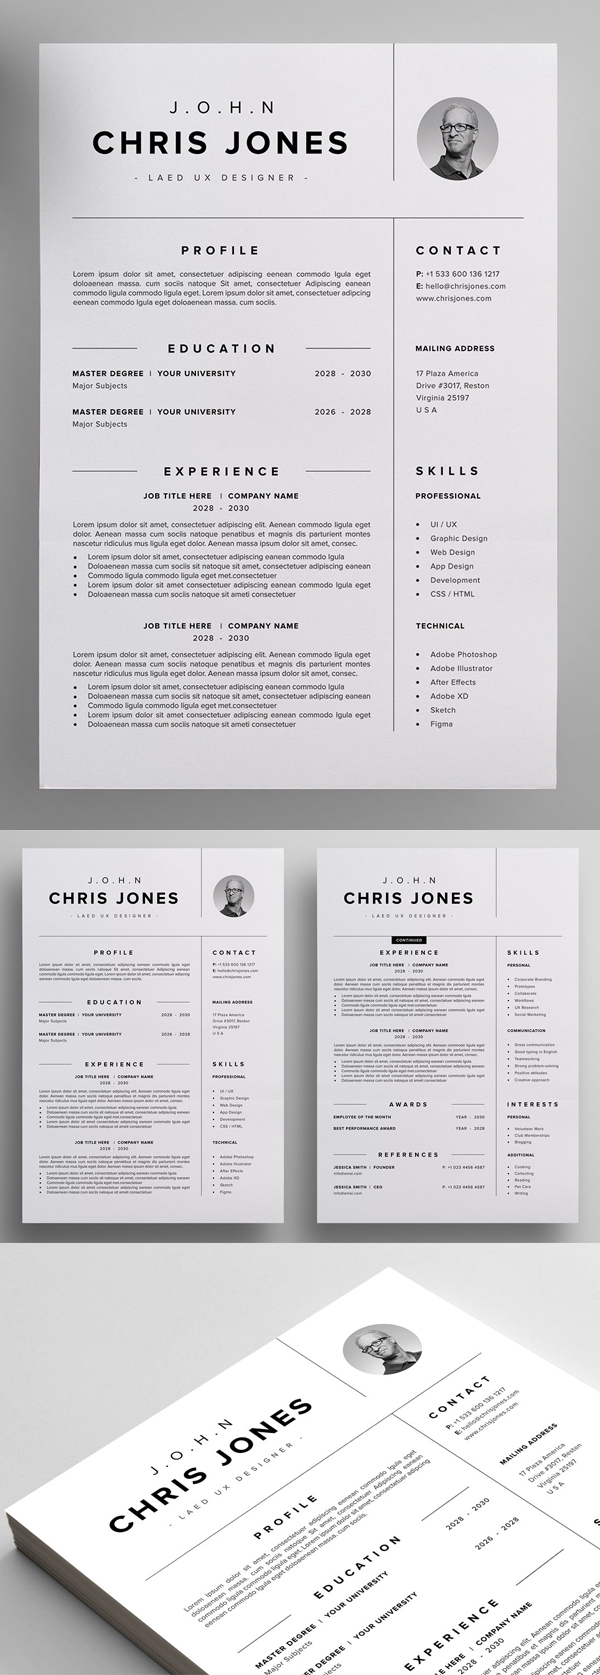 Professional Resume CV